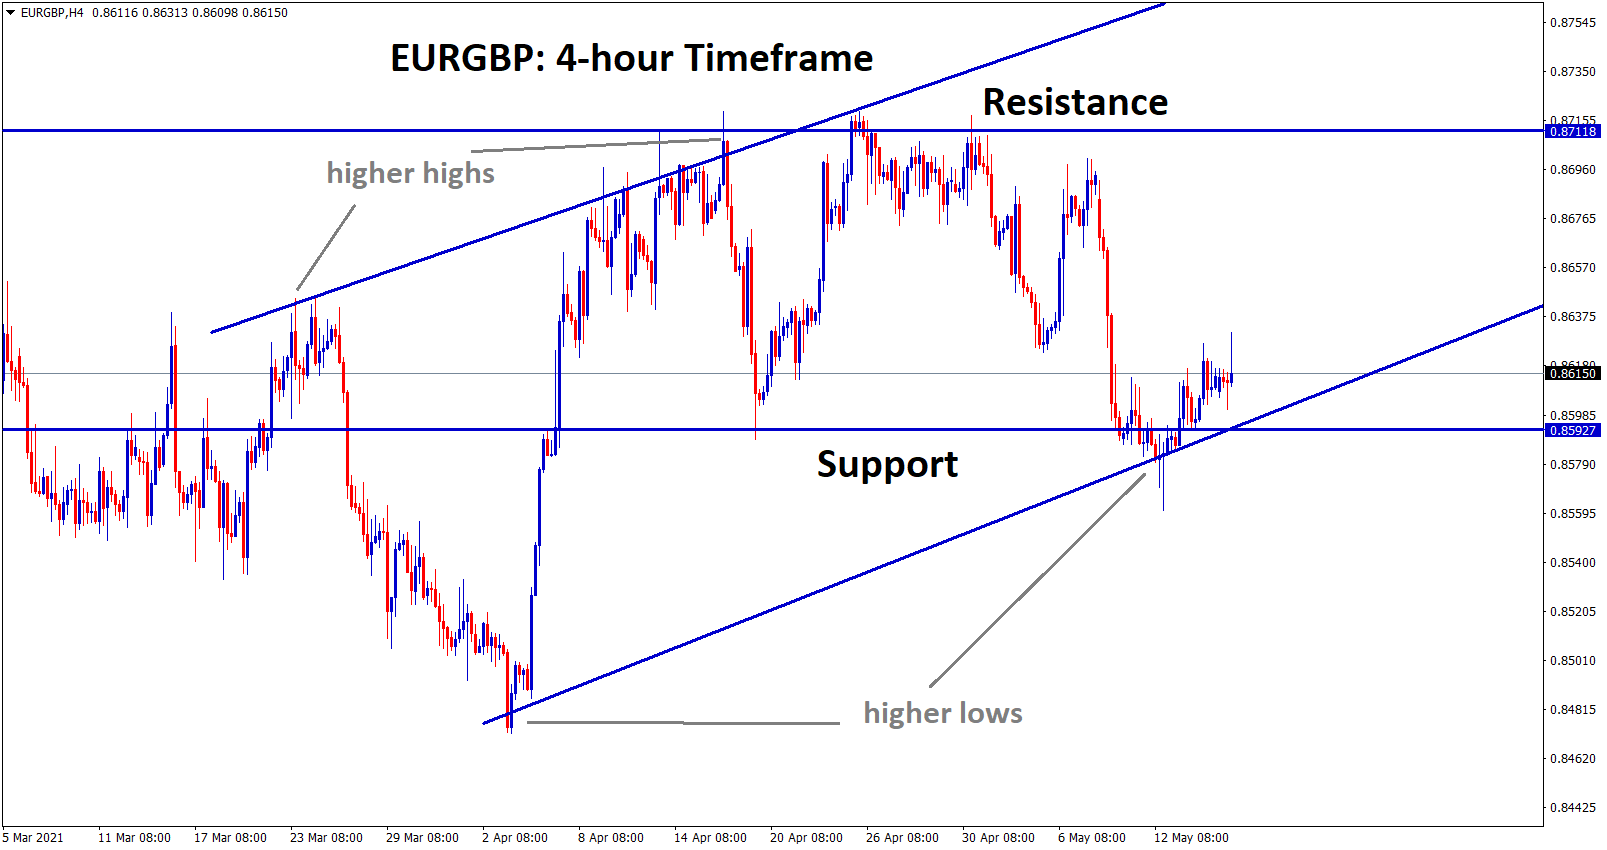 EURGBP bouncing back from the support and higher low level of uptrend line